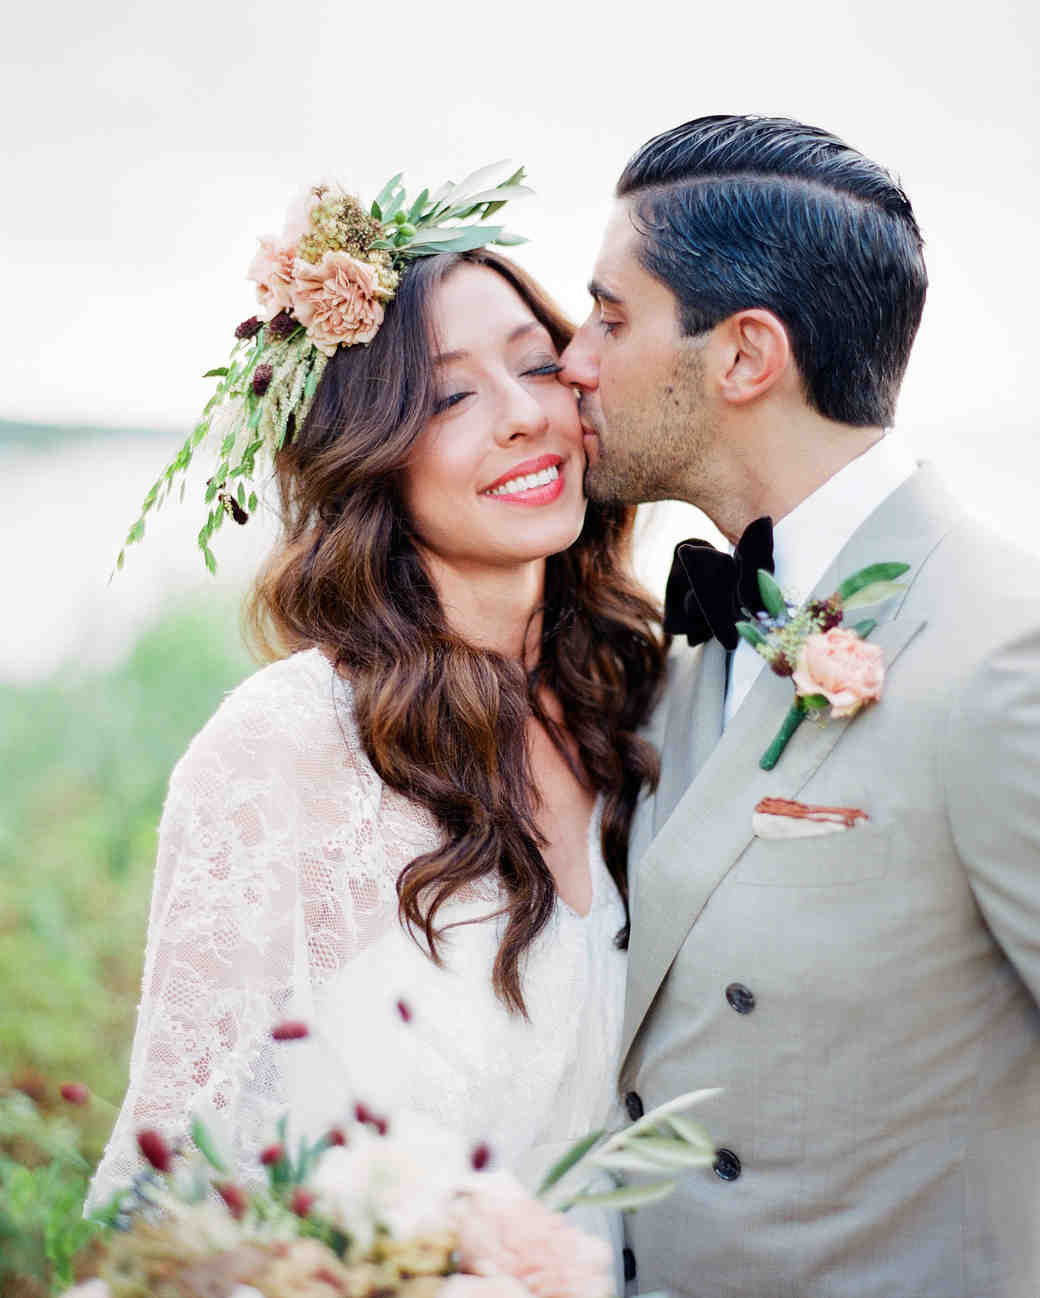 negin-chris-wedding-couple-0101-s112116-0815.jpg